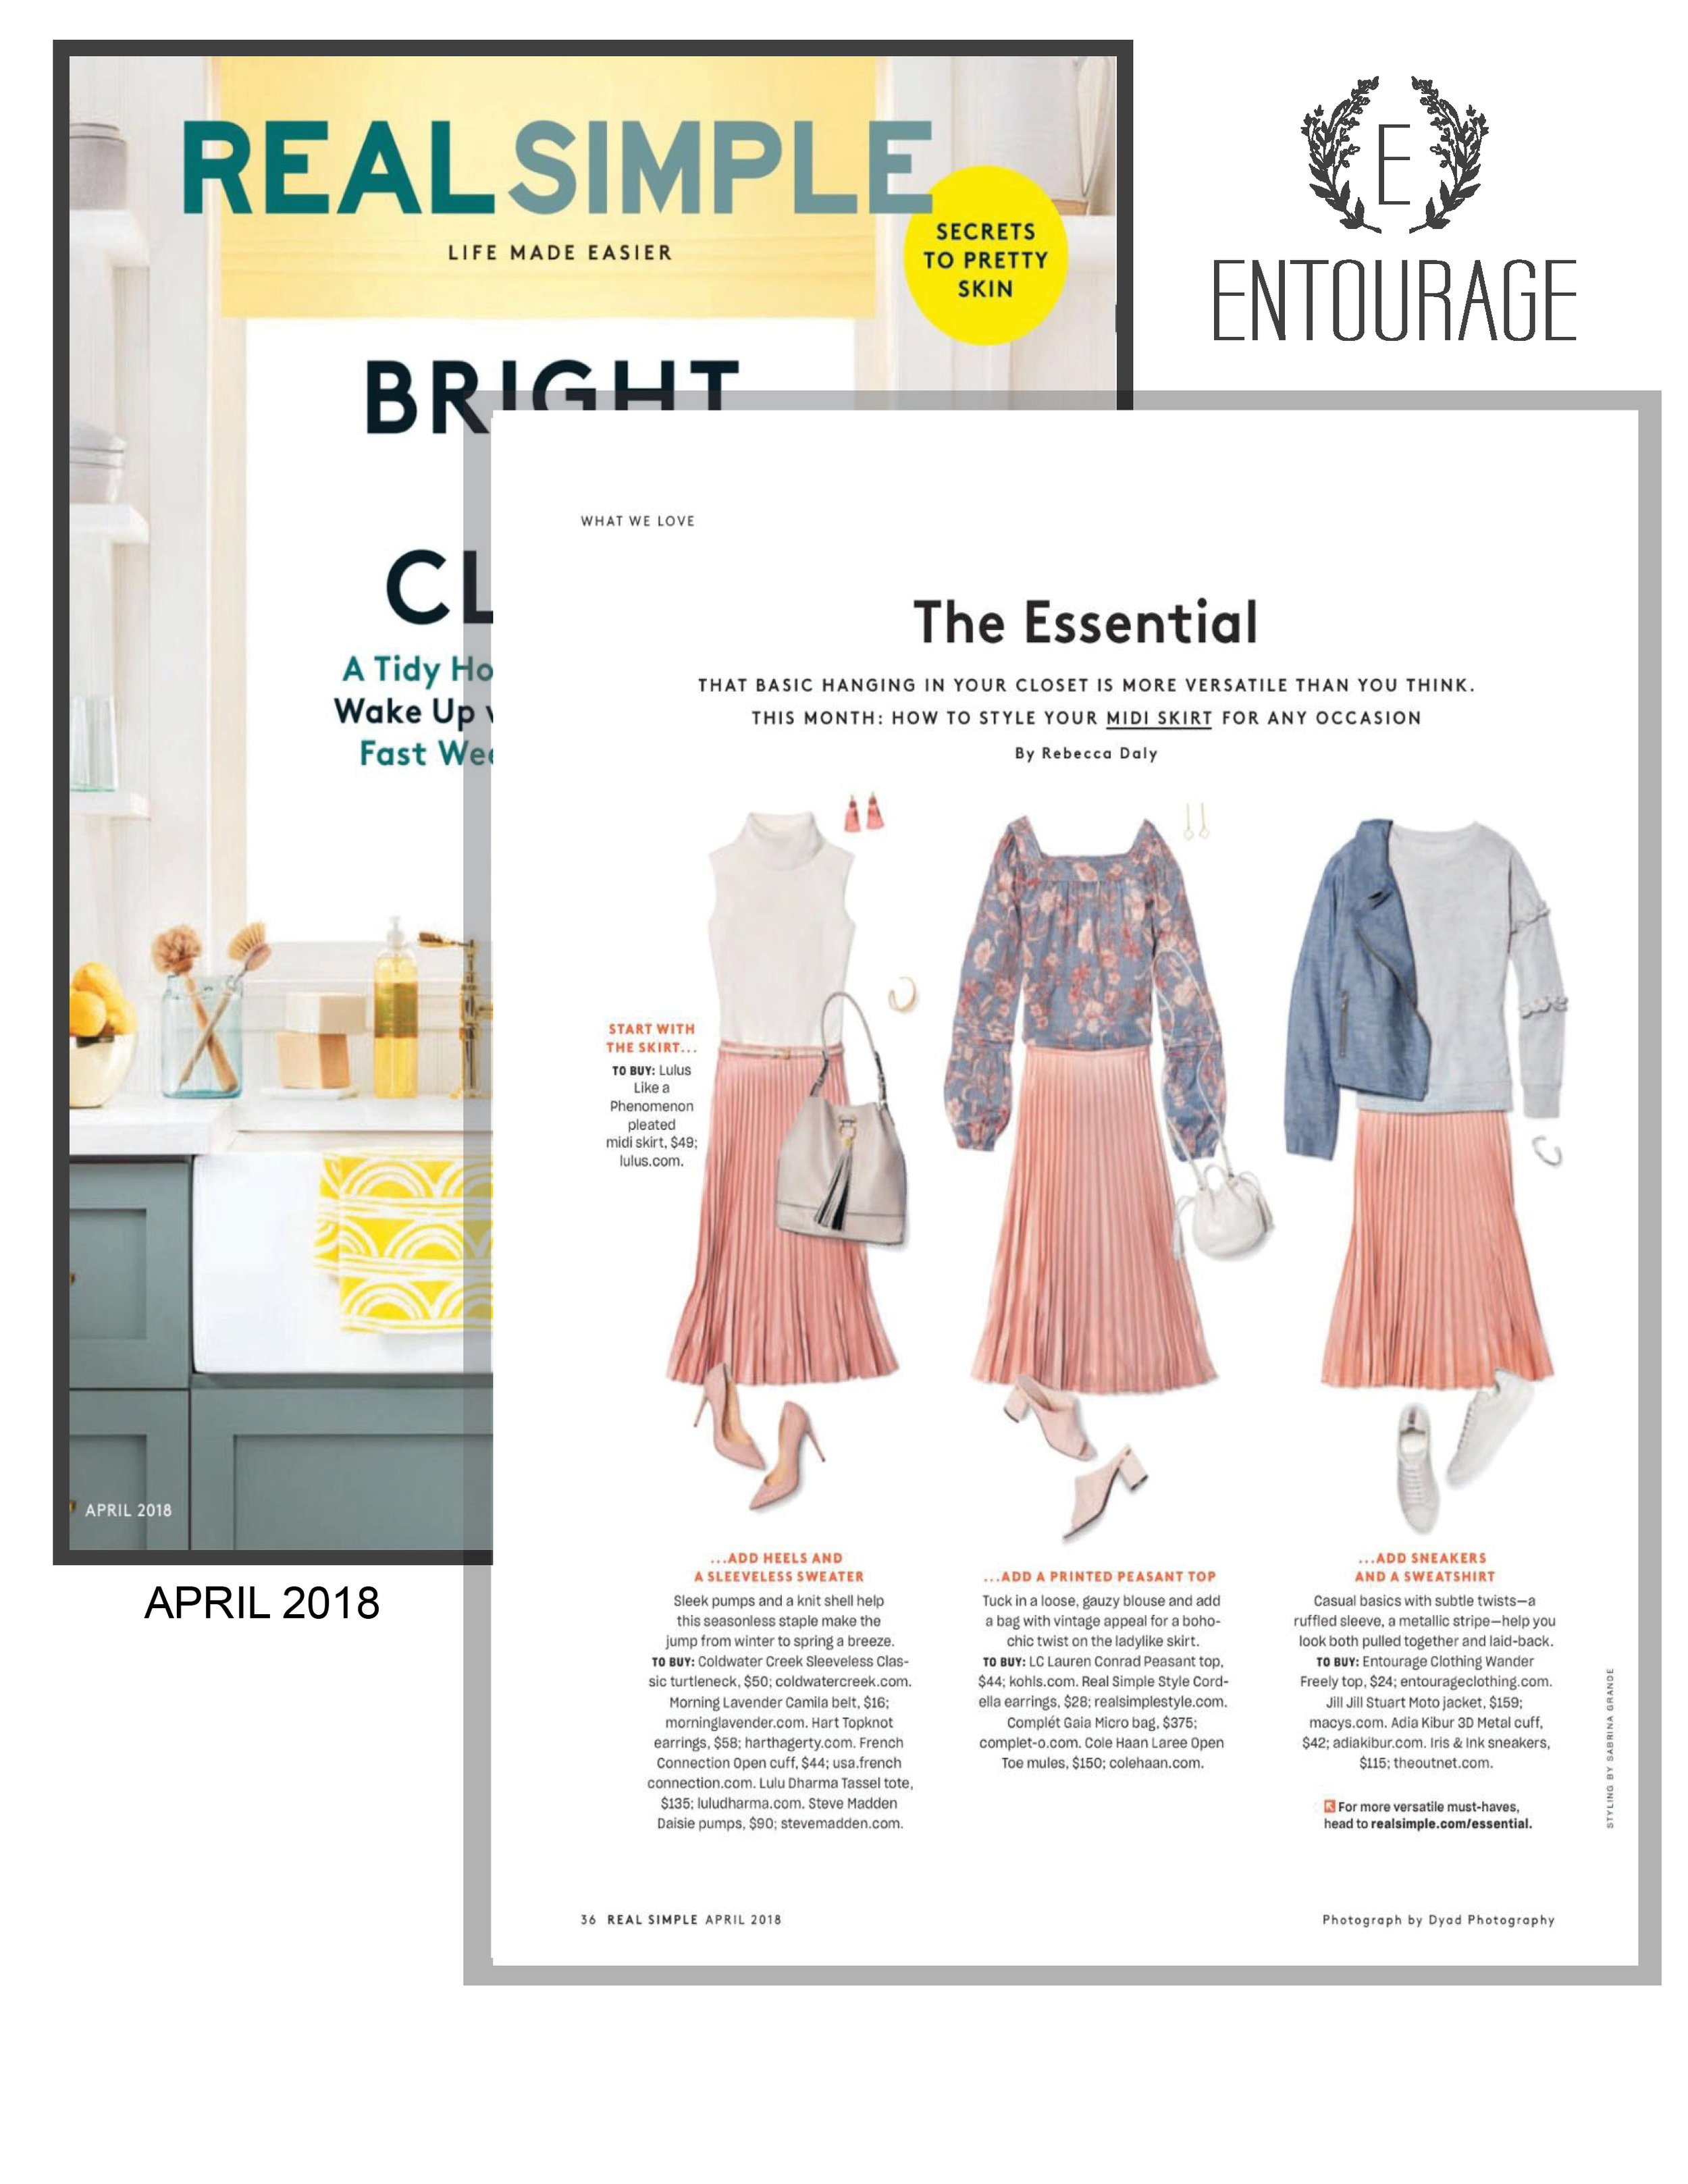 Entourage_RealSimple_April2018.jpg